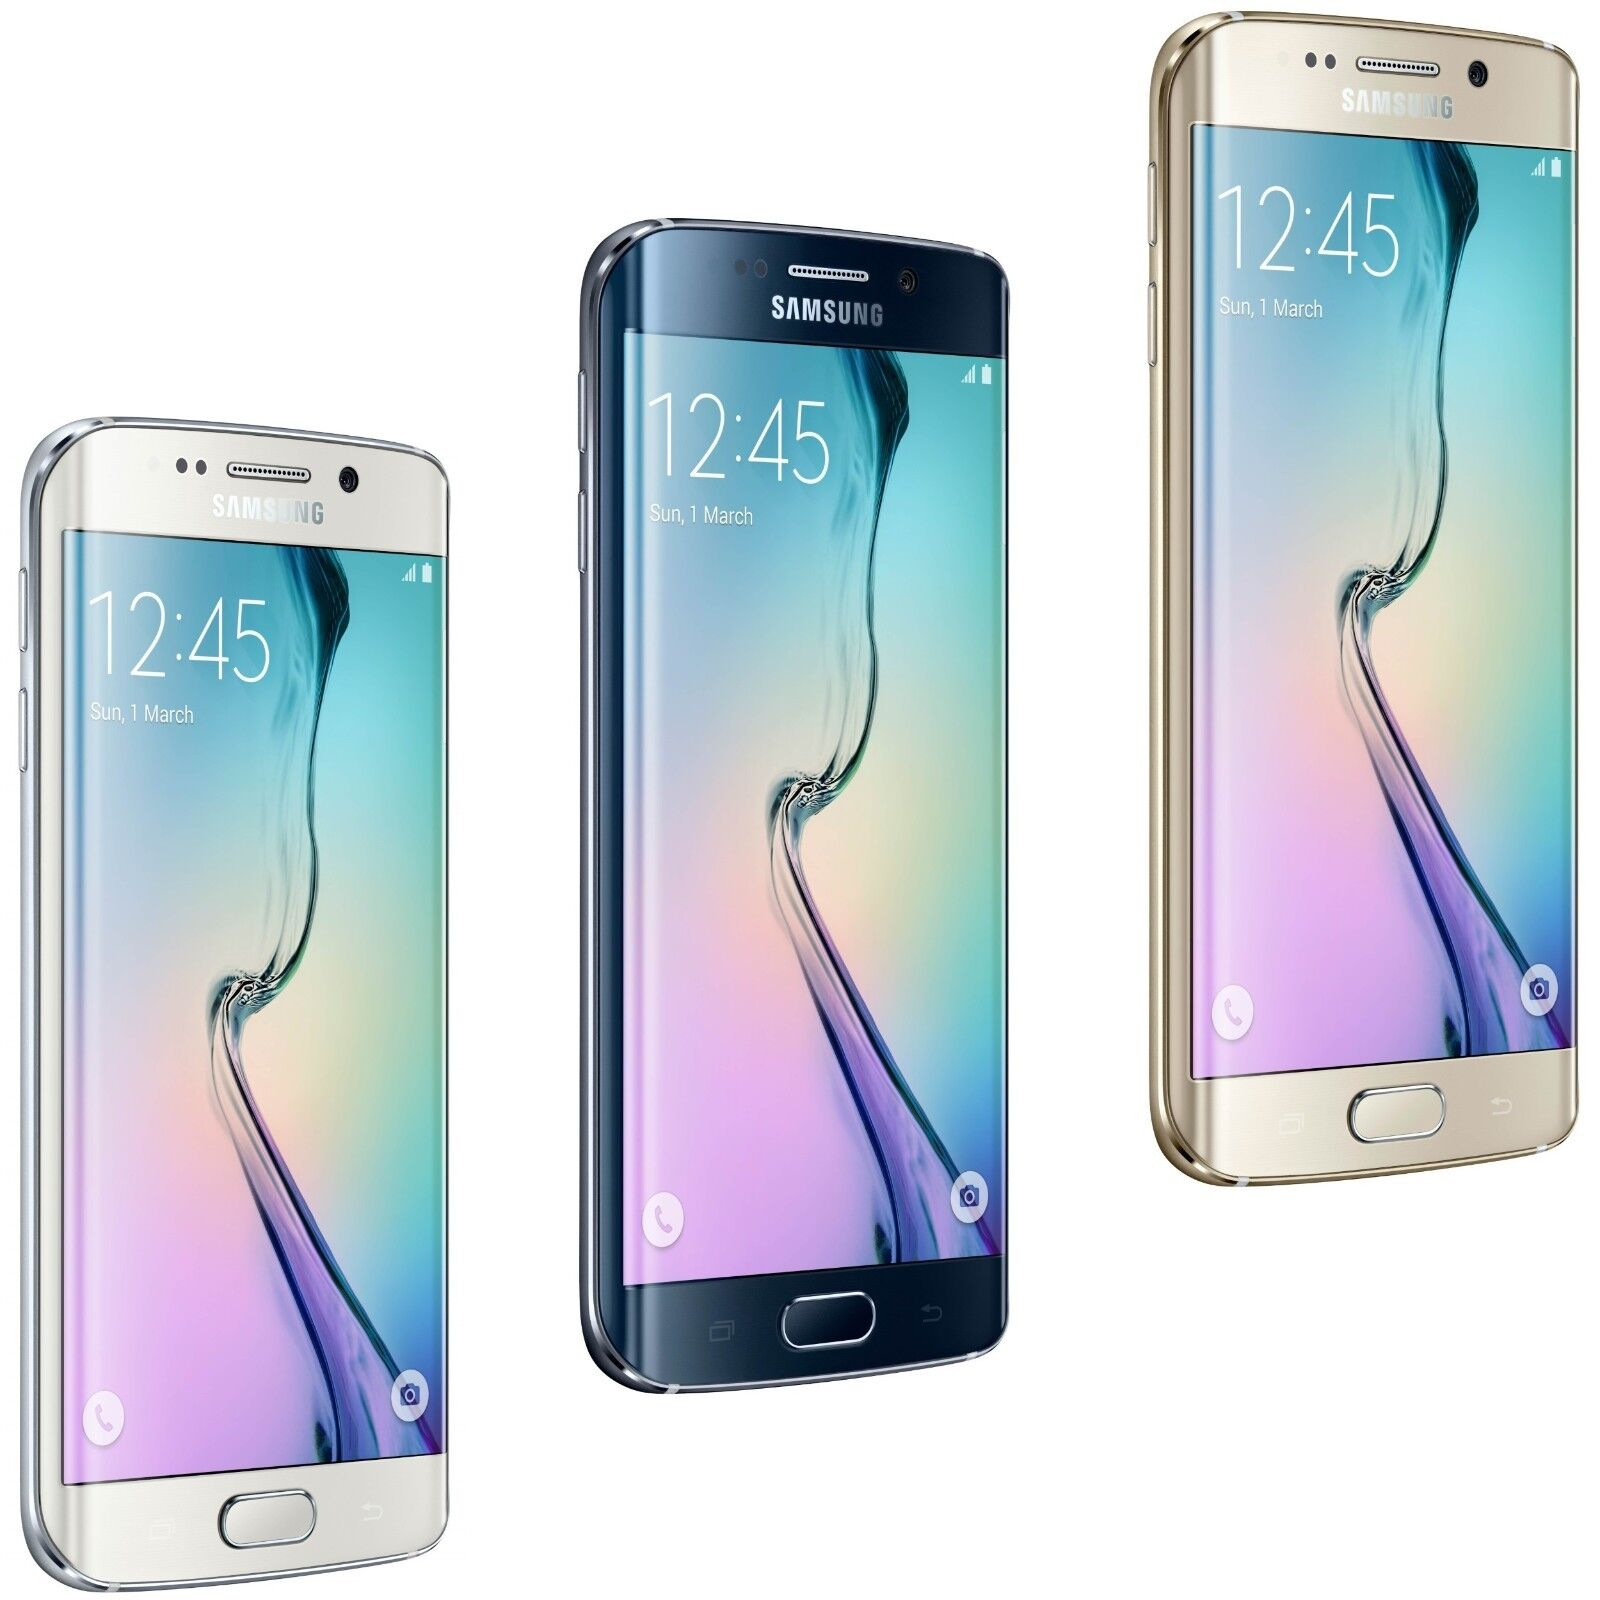 Samsung Galaxy S6 edge SM-G9250 (FACTORY UNLOCKED) 5.1